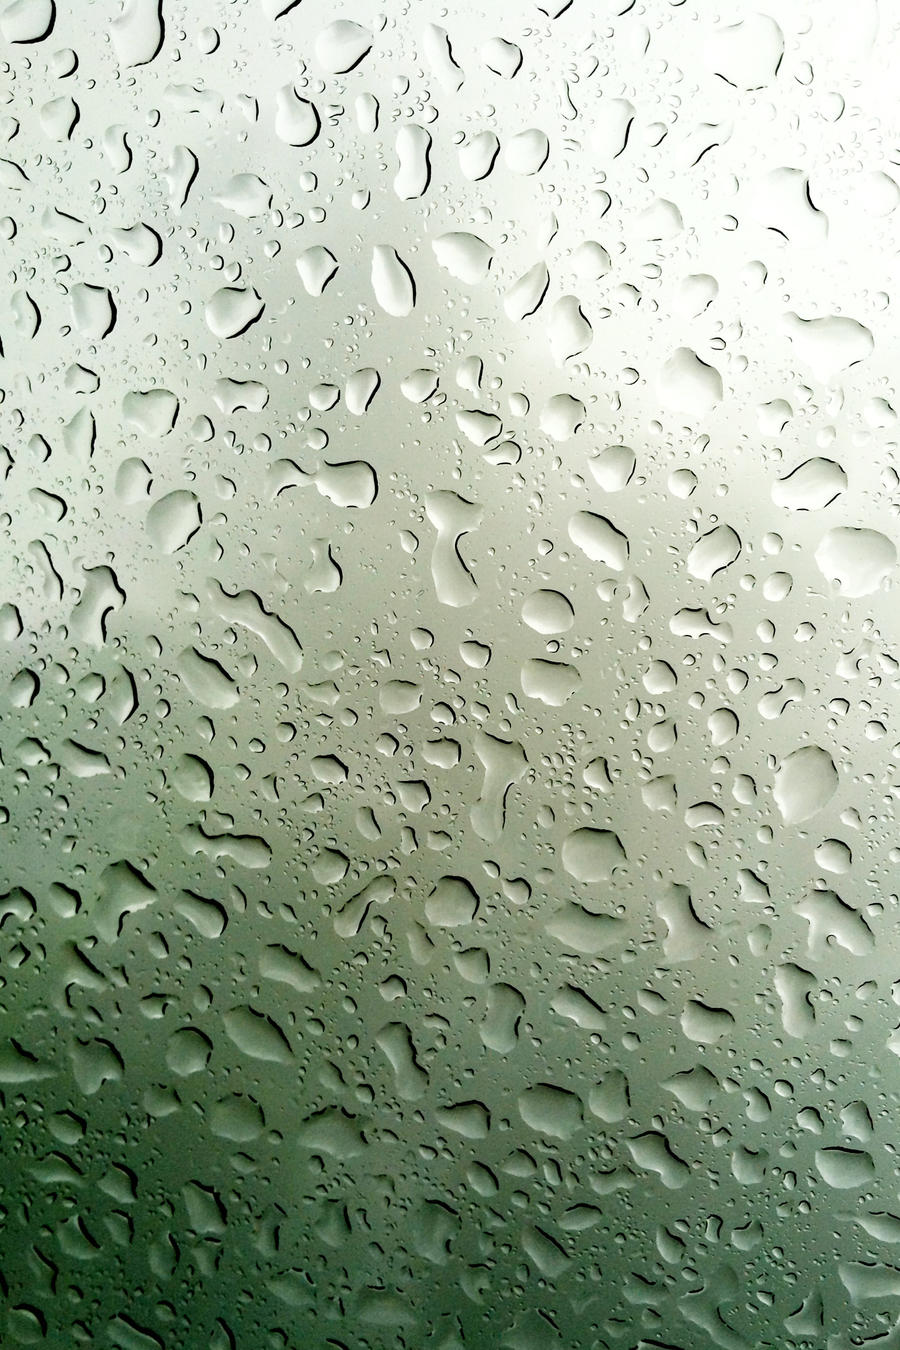 Iphone Wallpaper Raindrops By Clokverkorange On Deviantart